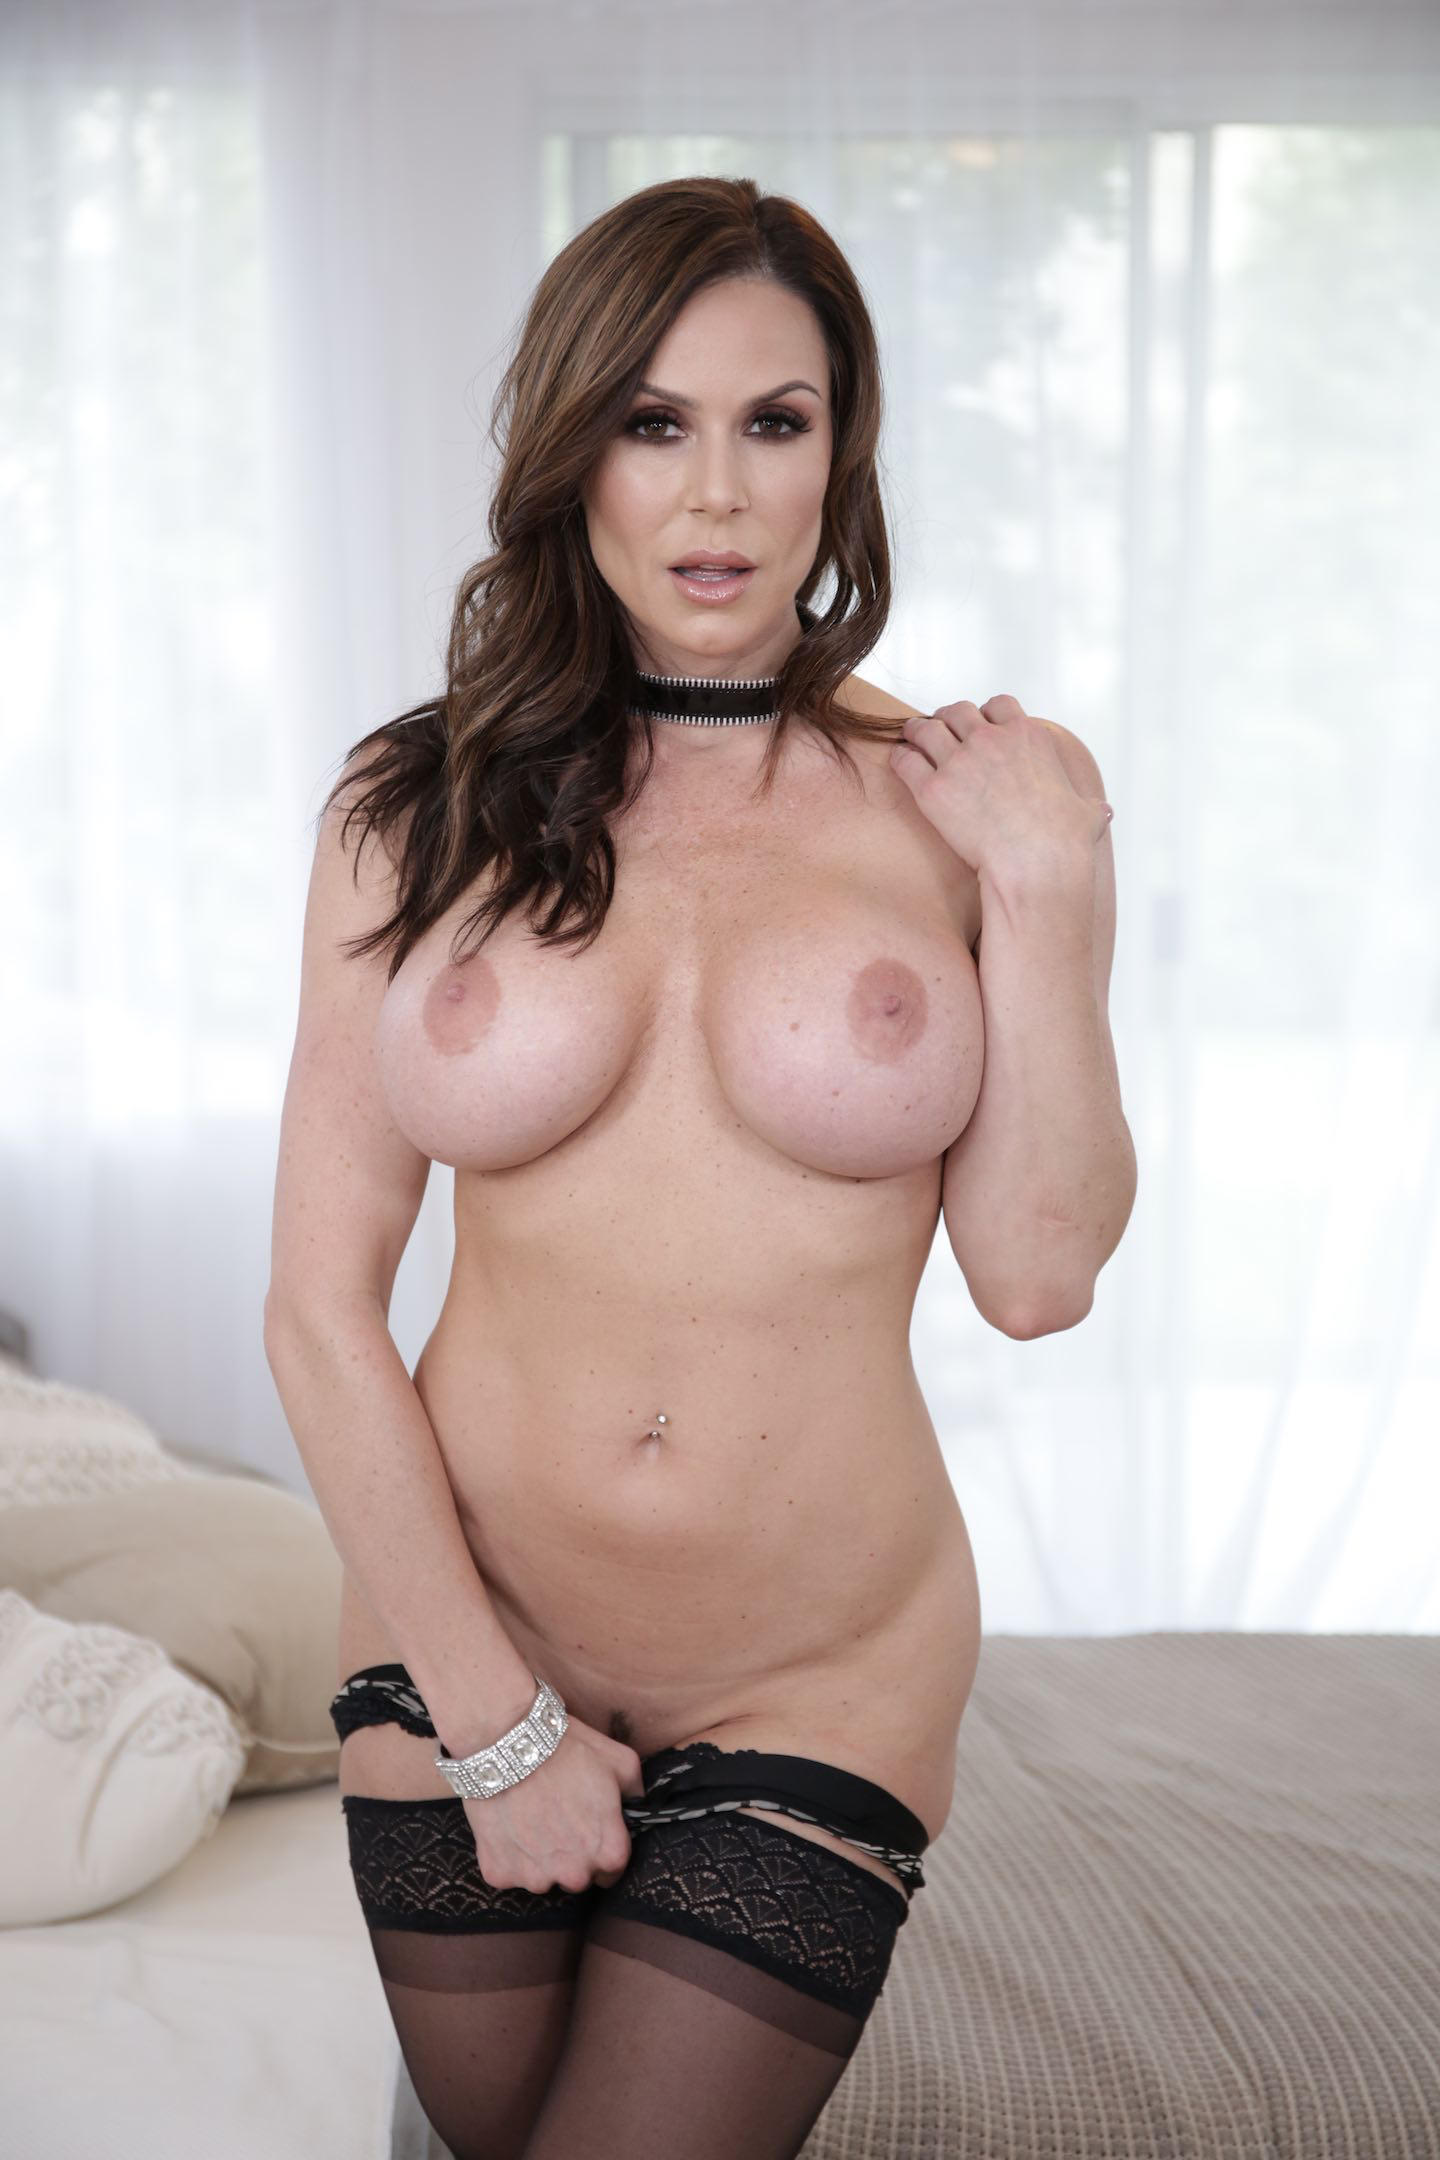 Army milf naked and unaware 3